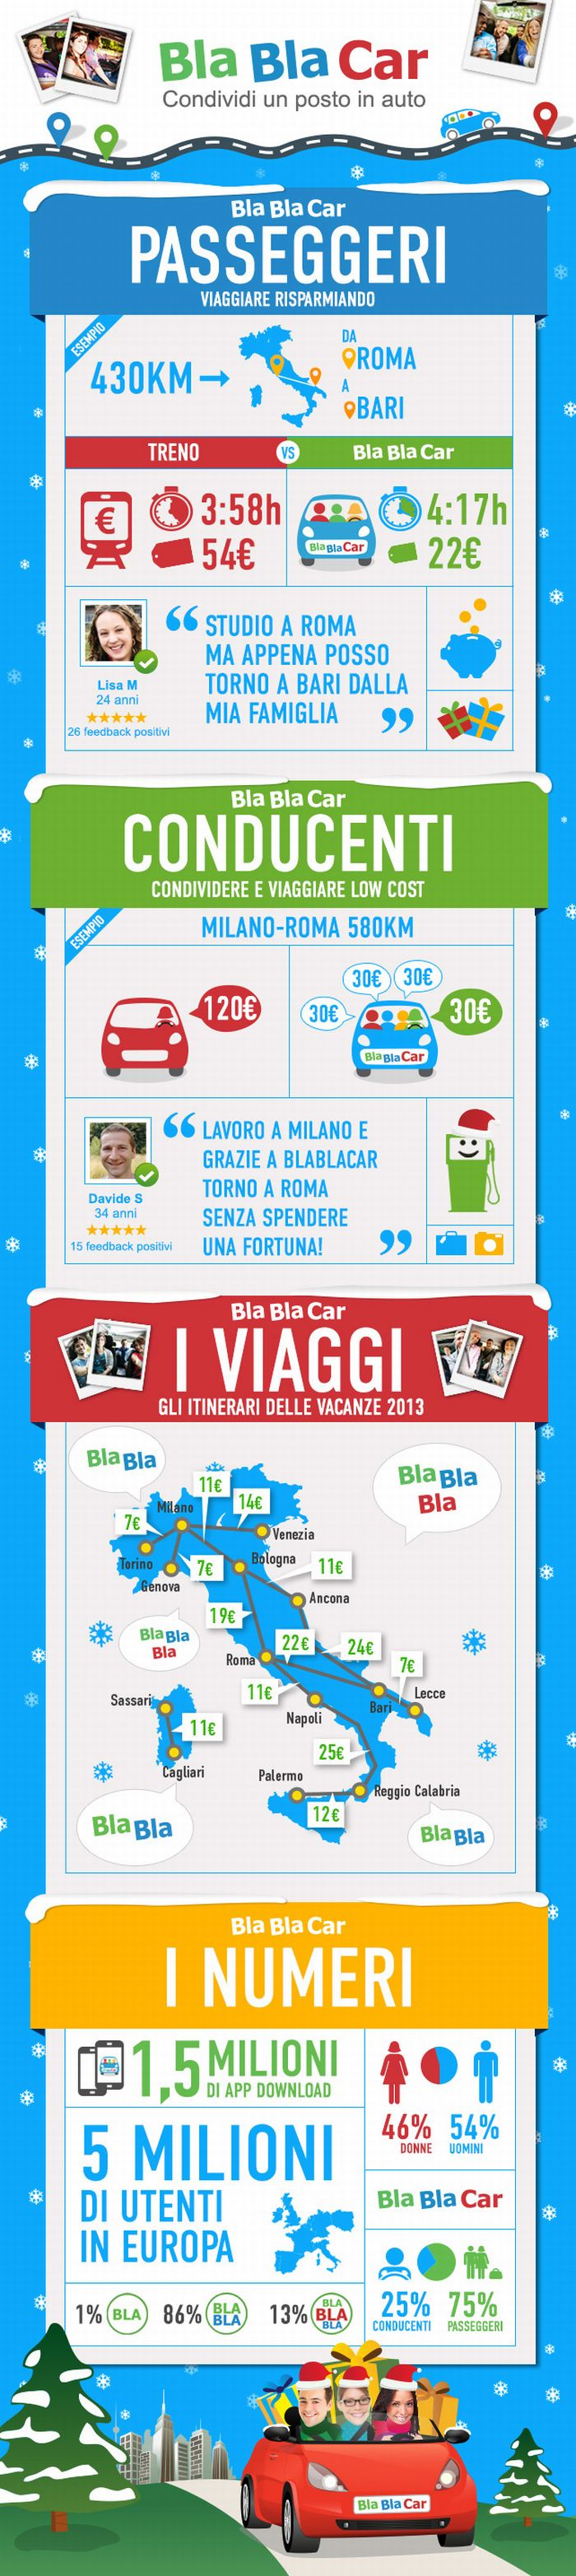 Infografica-BlaBlaCar-JPEG-light